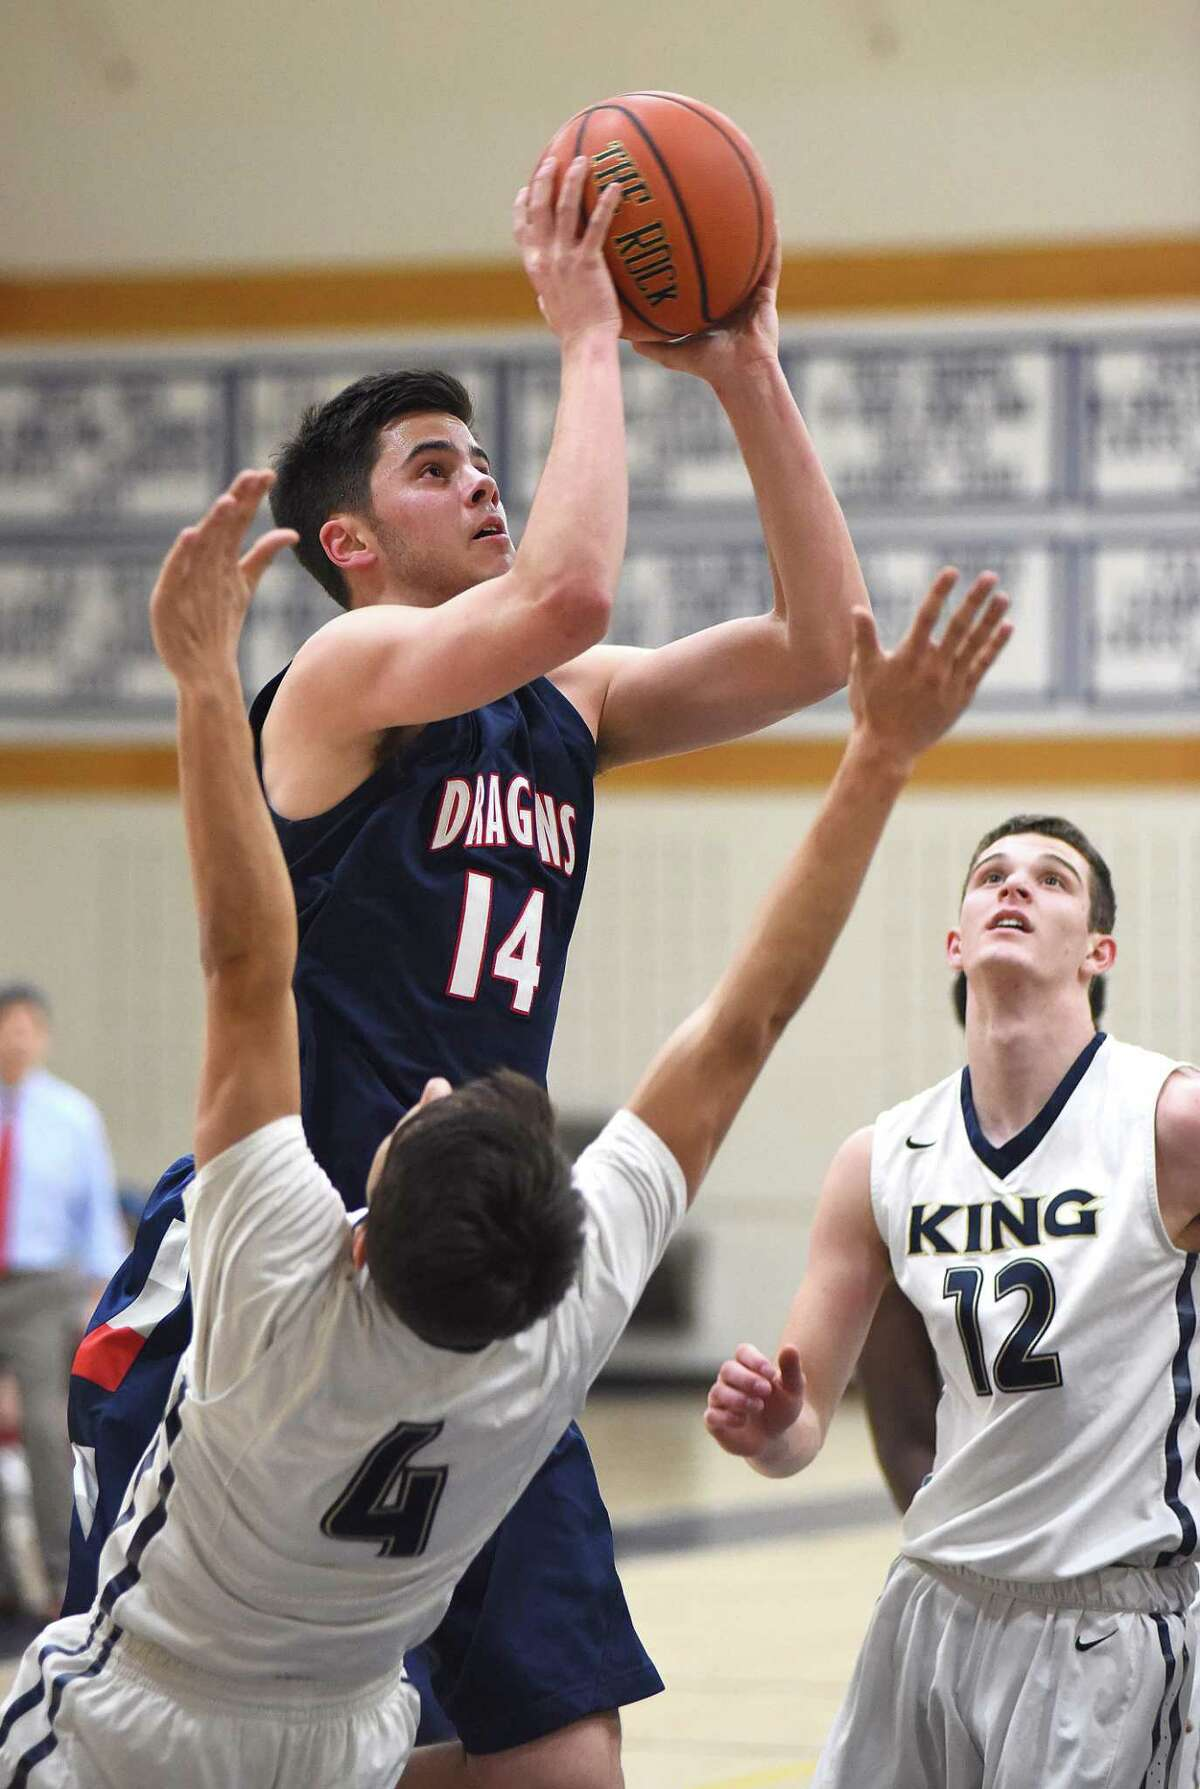 GFA's Greg Lawrence, top, puts up a shot over King's Trey Canevari, left, as Renn Lints looks on during Tuesday's FAA quarterfinal game at Coyle Gymnasium in Westport.